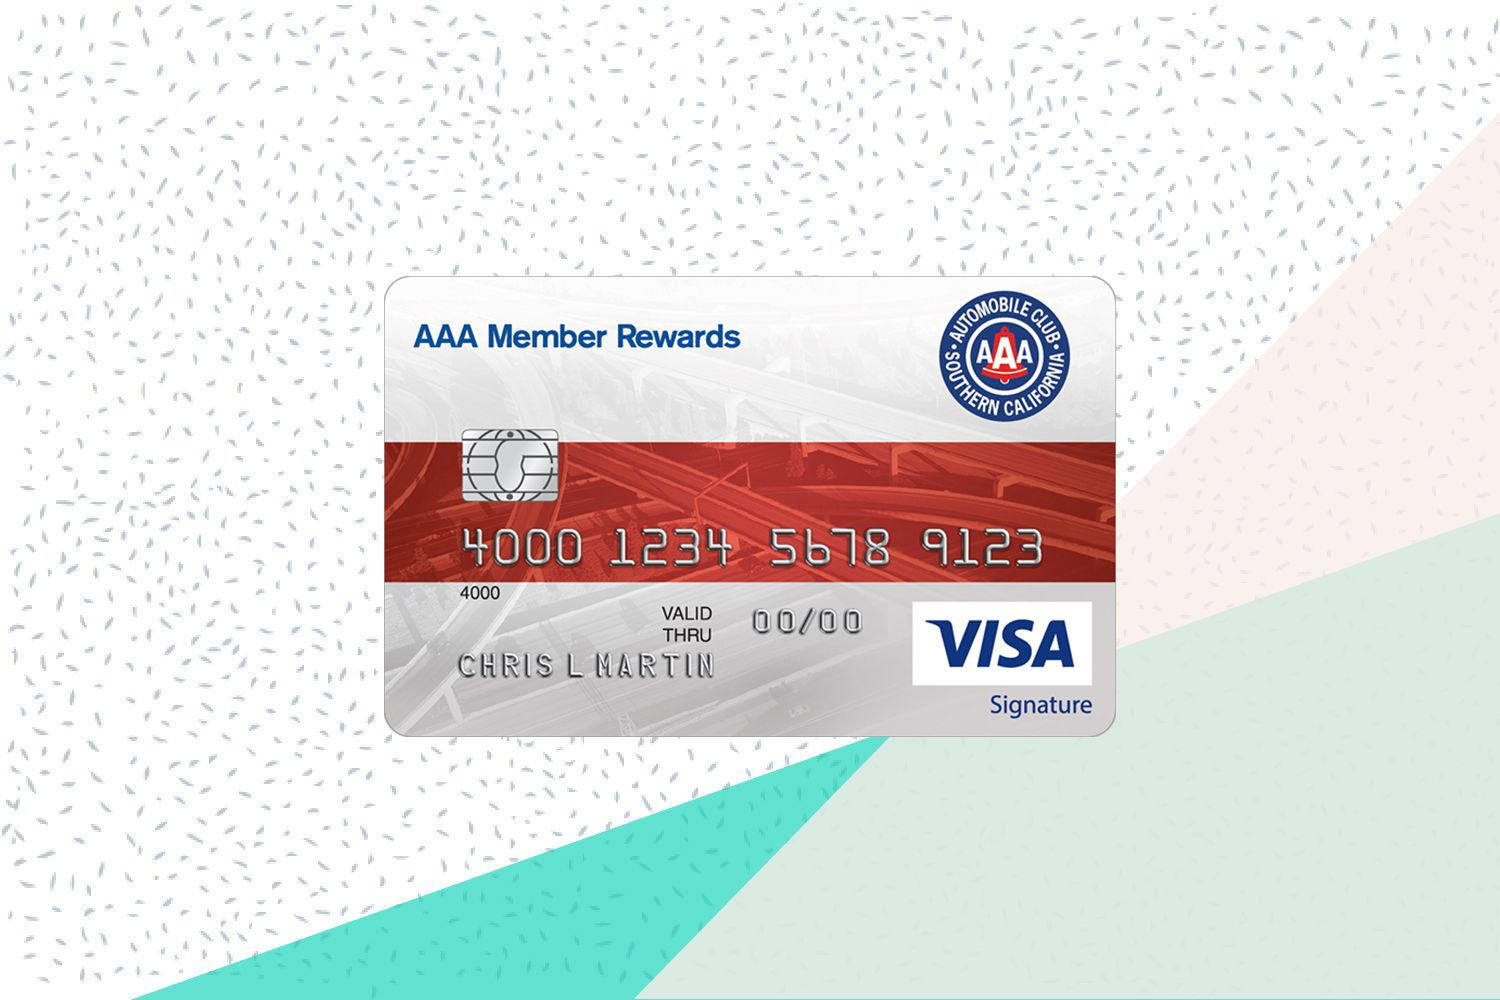 Aaa Life Insurance Reviews >> Aaa Member Rewards Visa Review A Good Travel Card